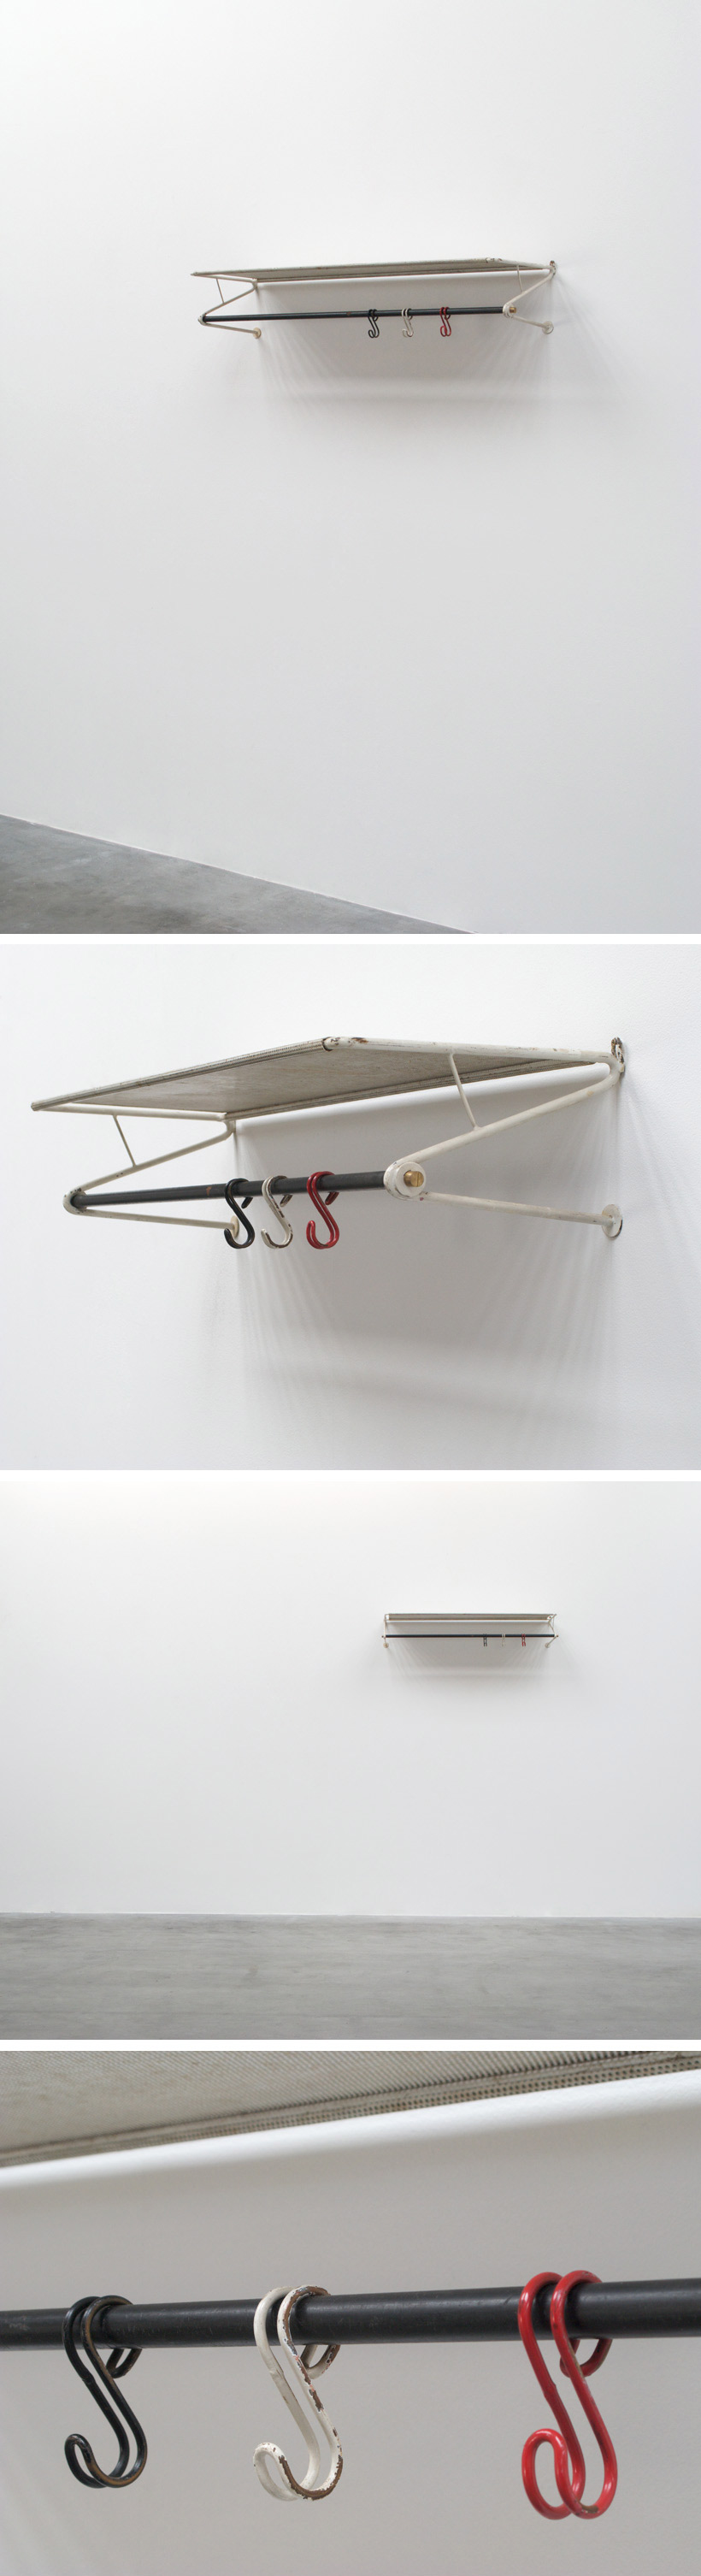 Mathieu Mategot coatrack for Artimeta Soest Large